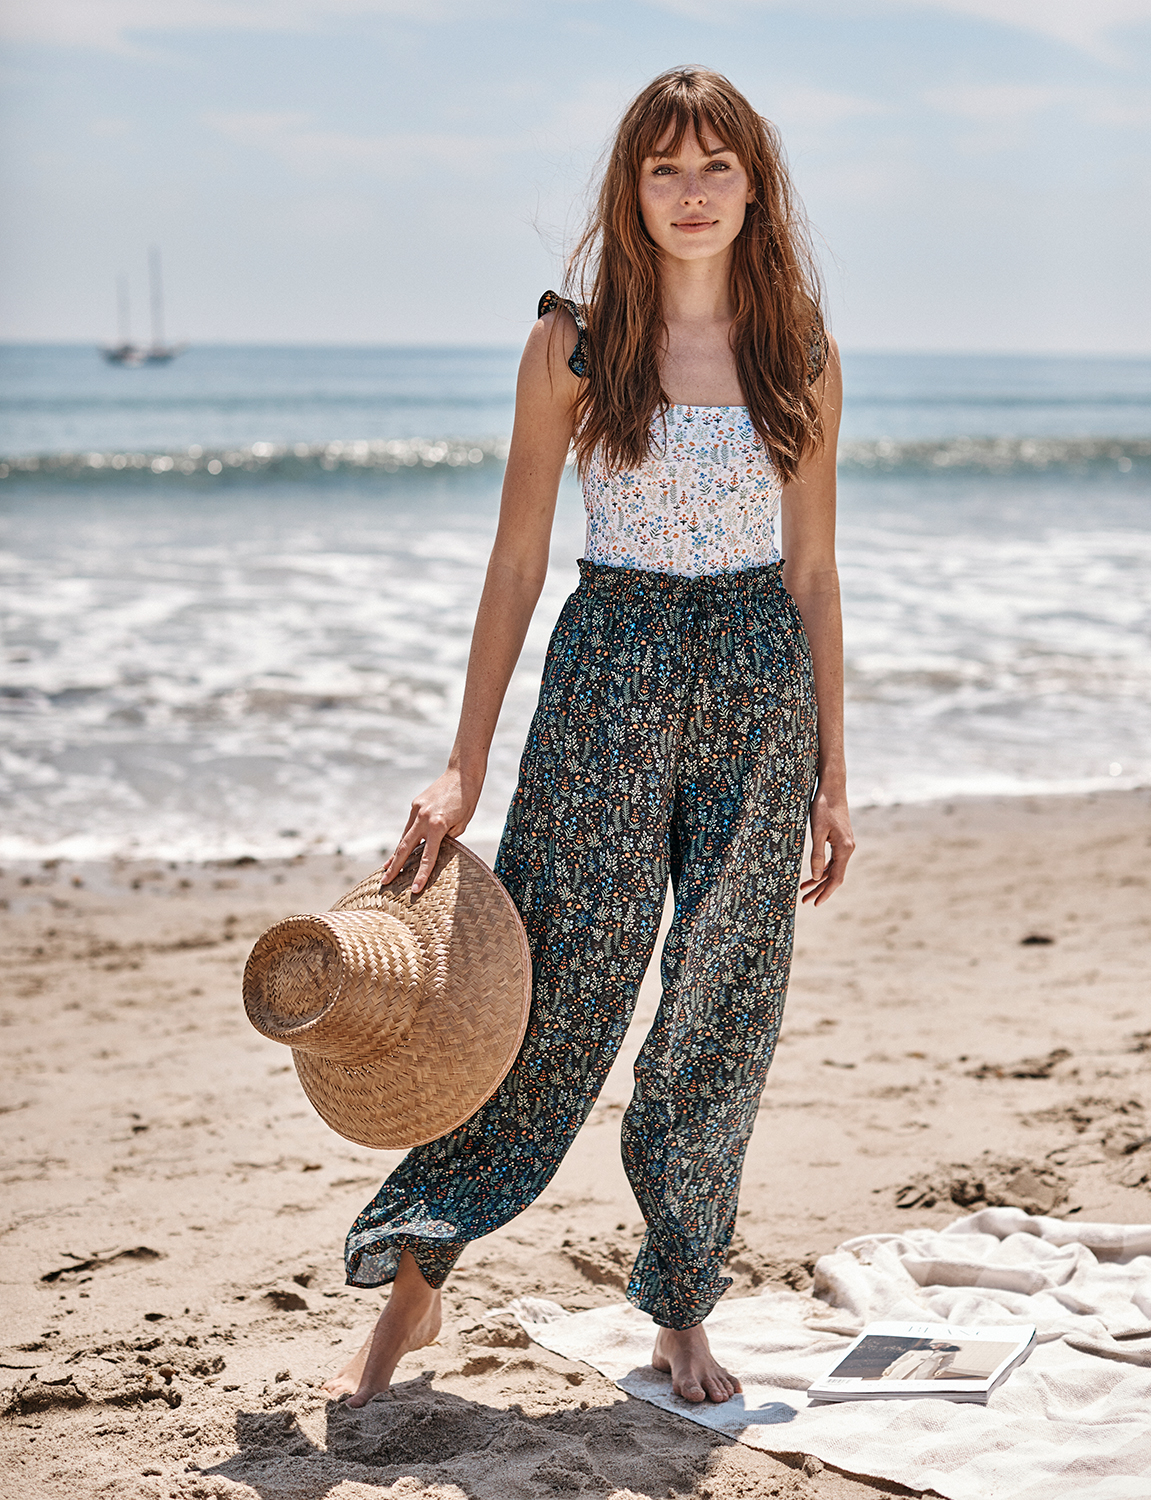 Buy It! The Palazzo Pant With Ties, $95; summersalt.com